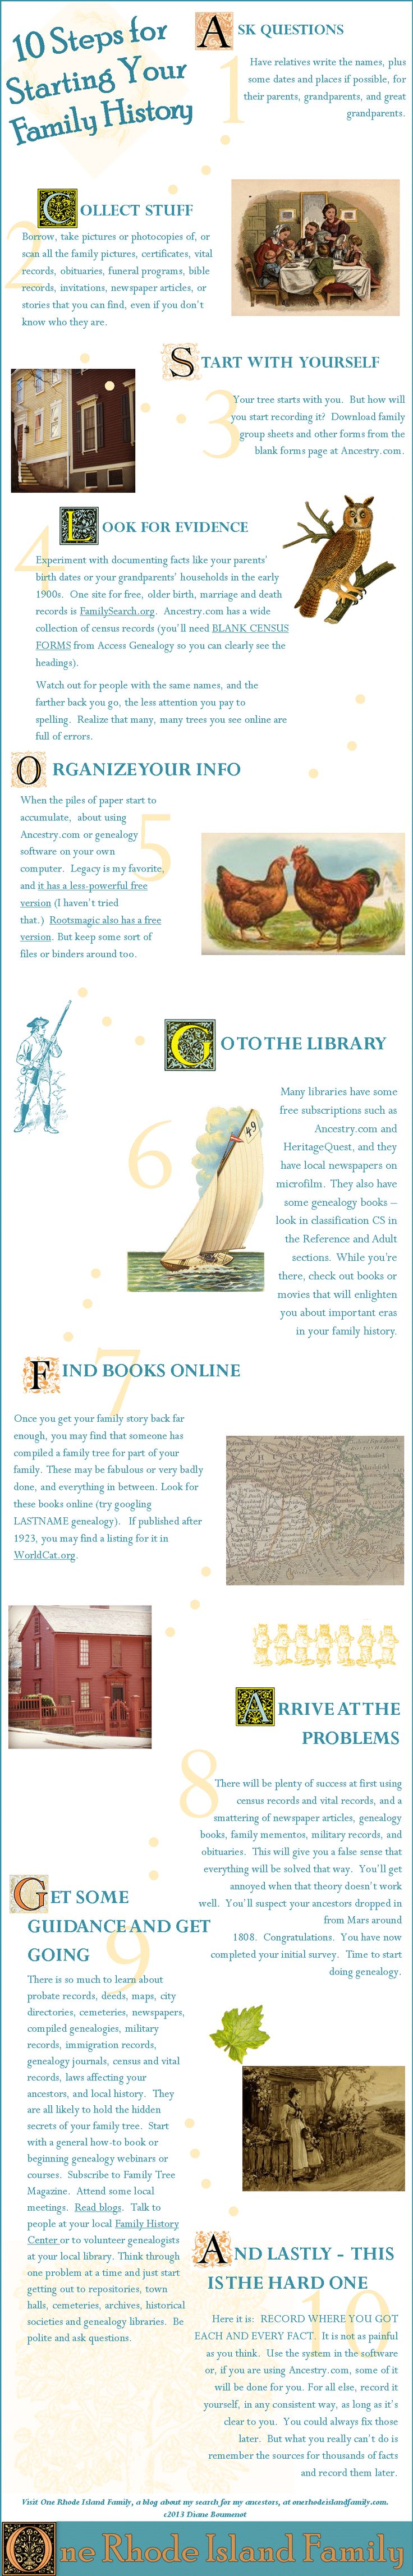 10 Steps for Starting Your Family History Infographic